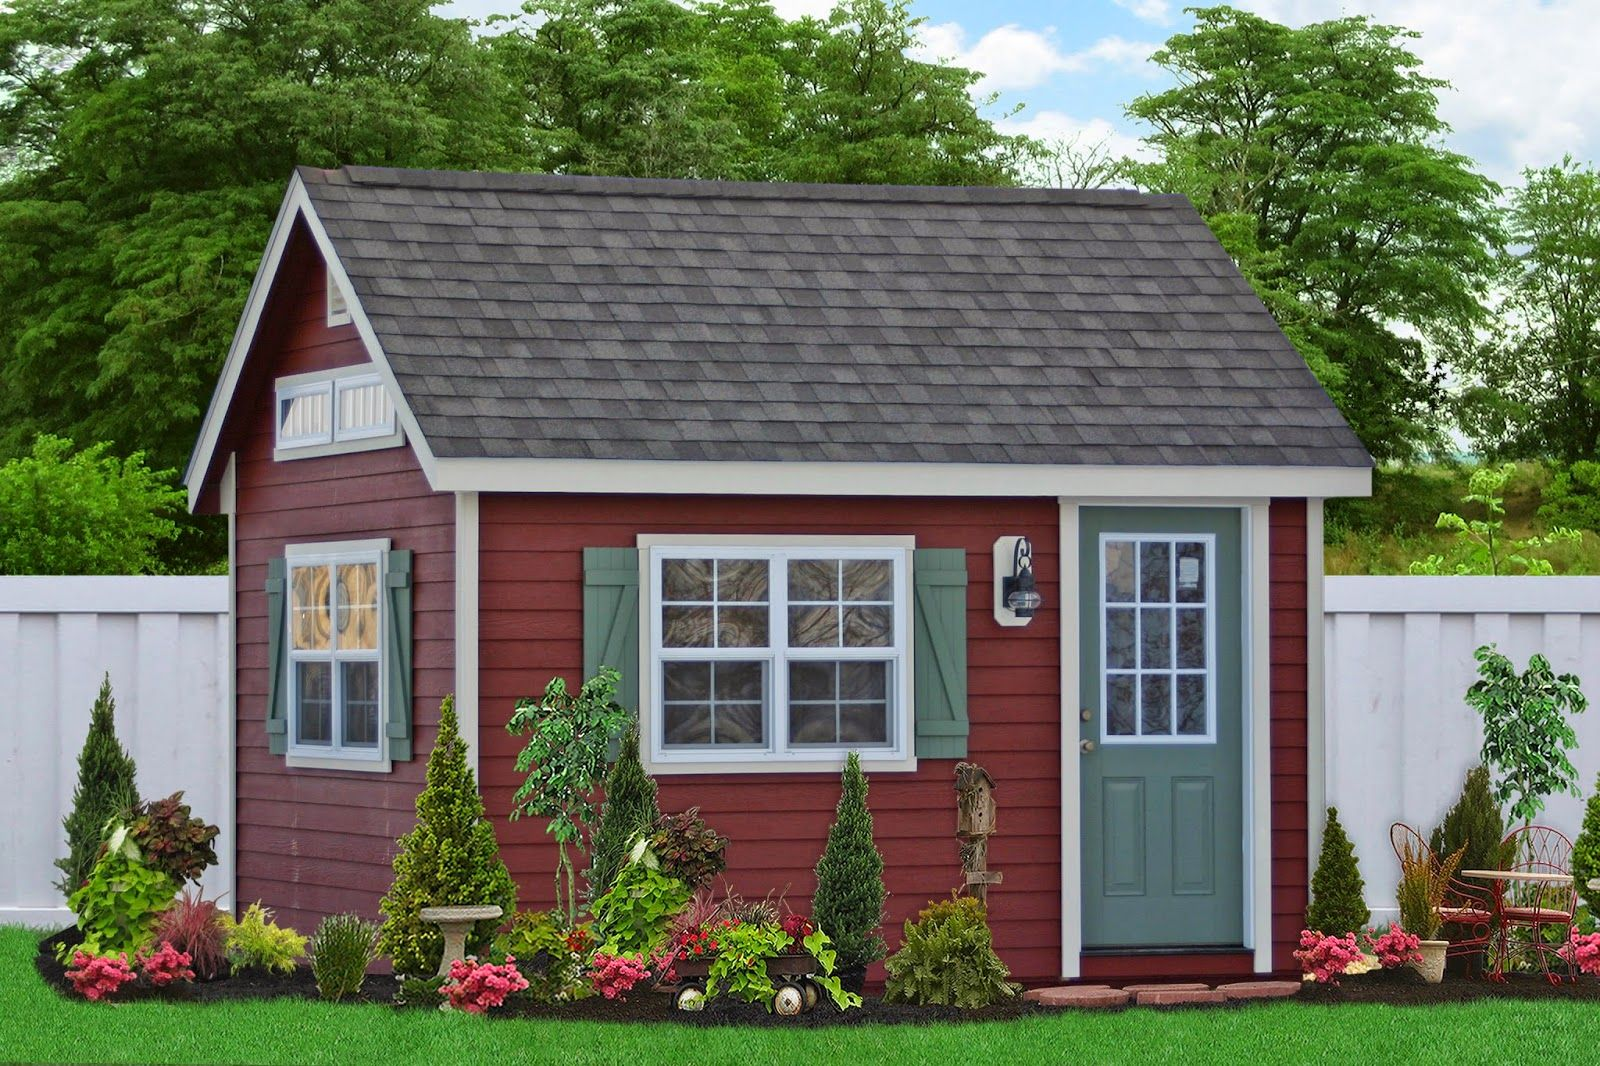 Garden Sheds Easton Pa color ideas for barn house- roof, windows etc shed along with